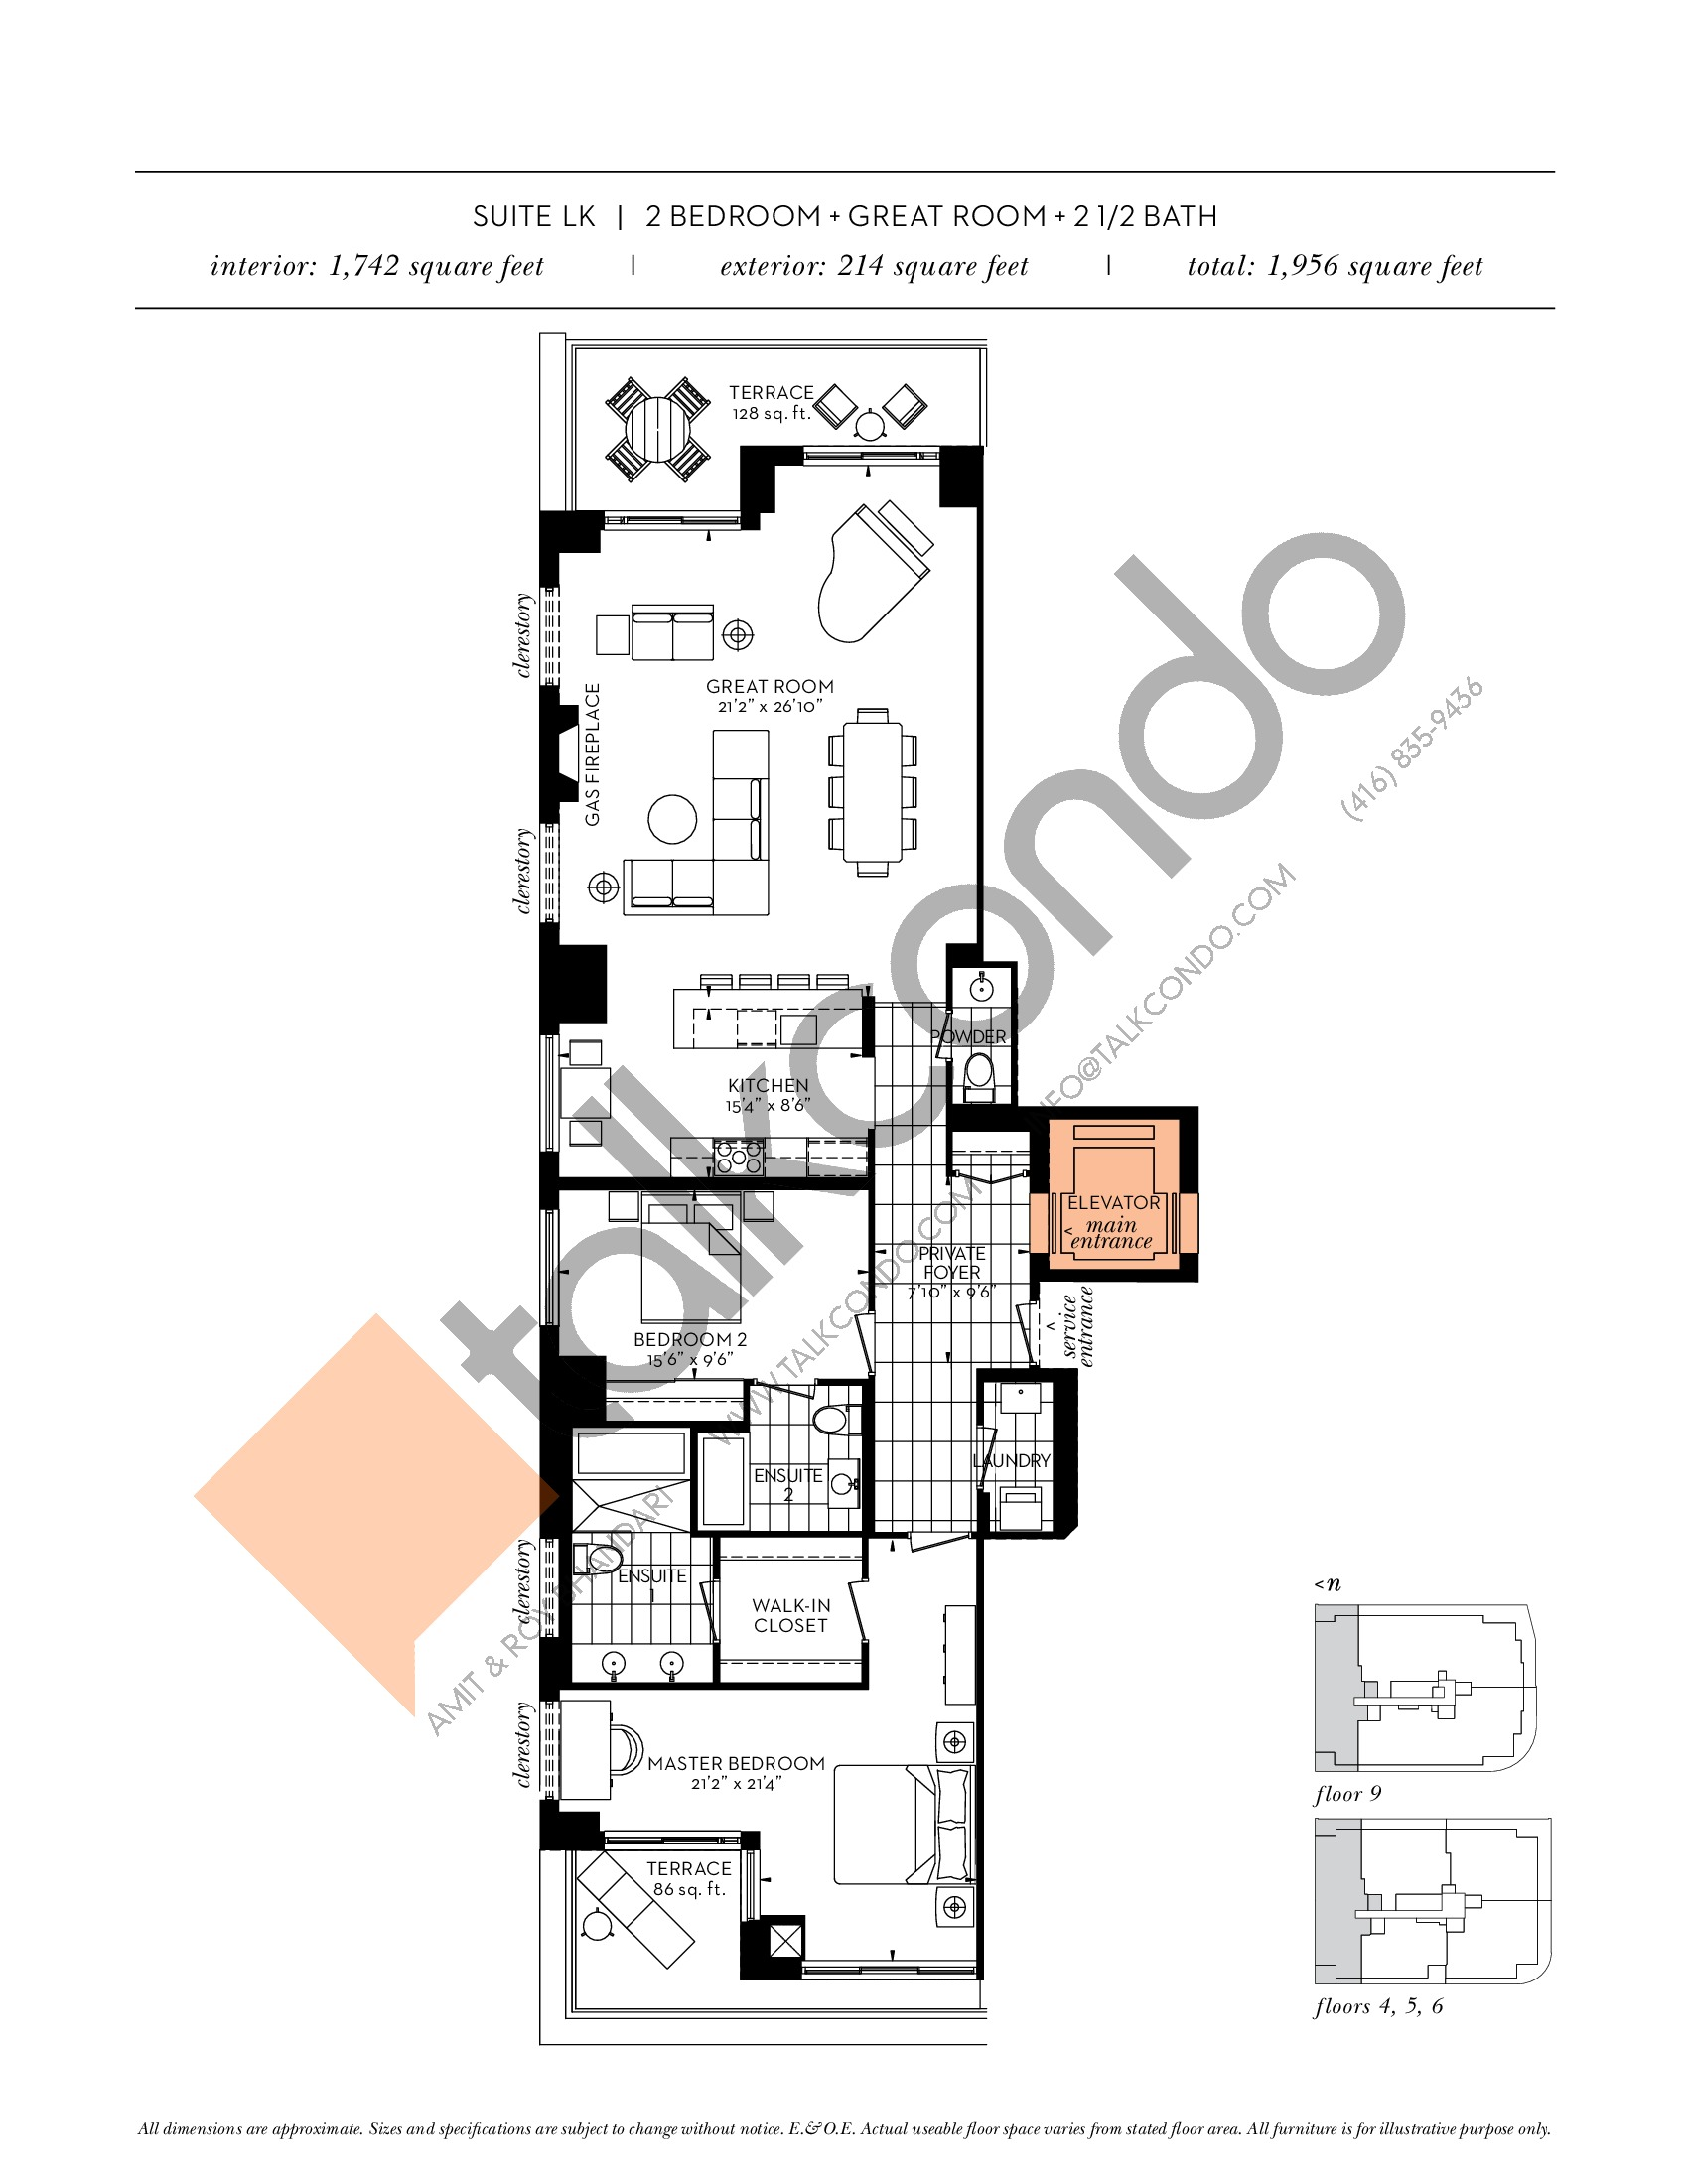 Suite LK Floor Plan at The Davies - 1742 sq.ft